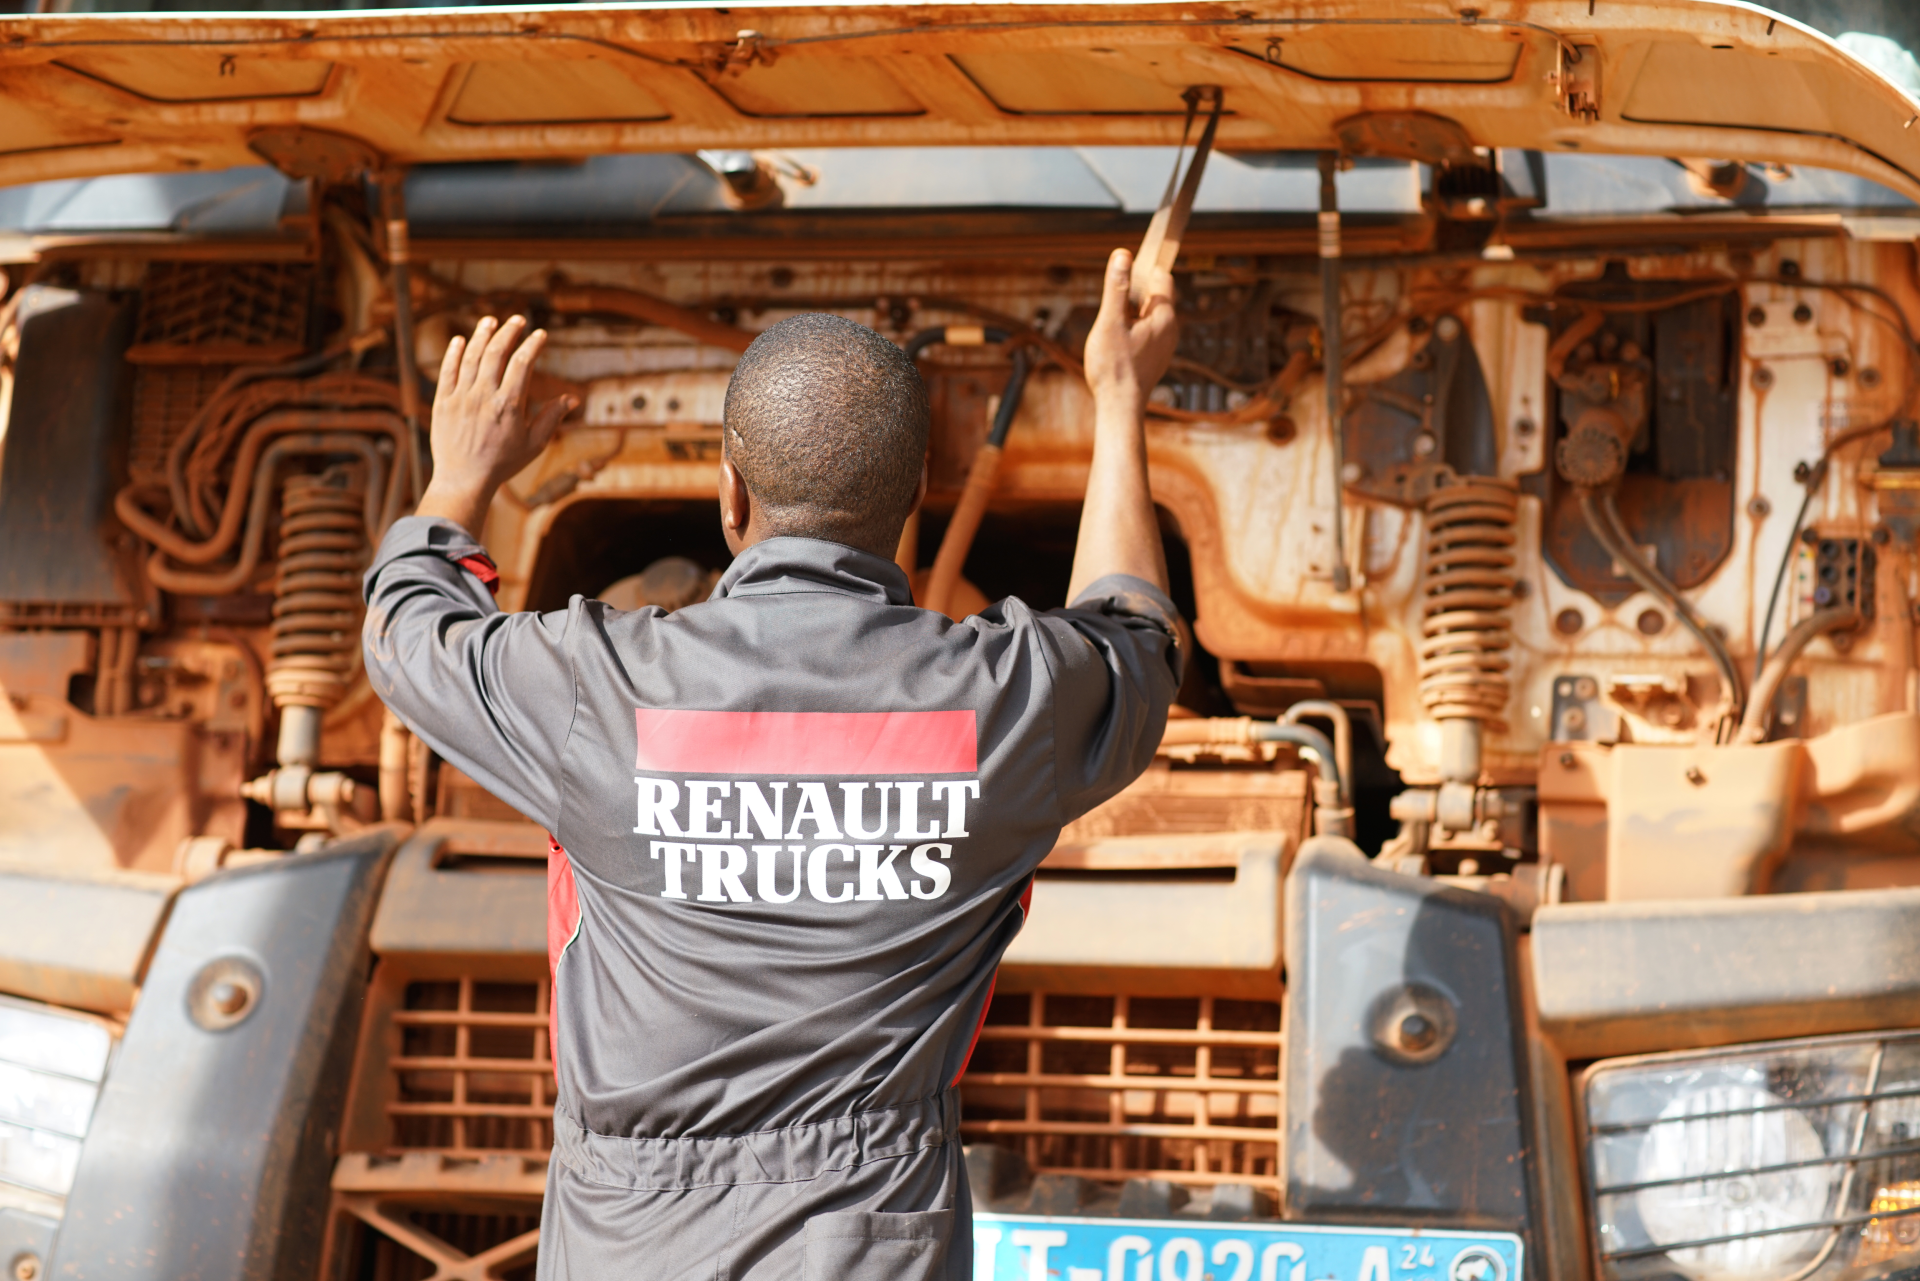 Services Renault Trucks